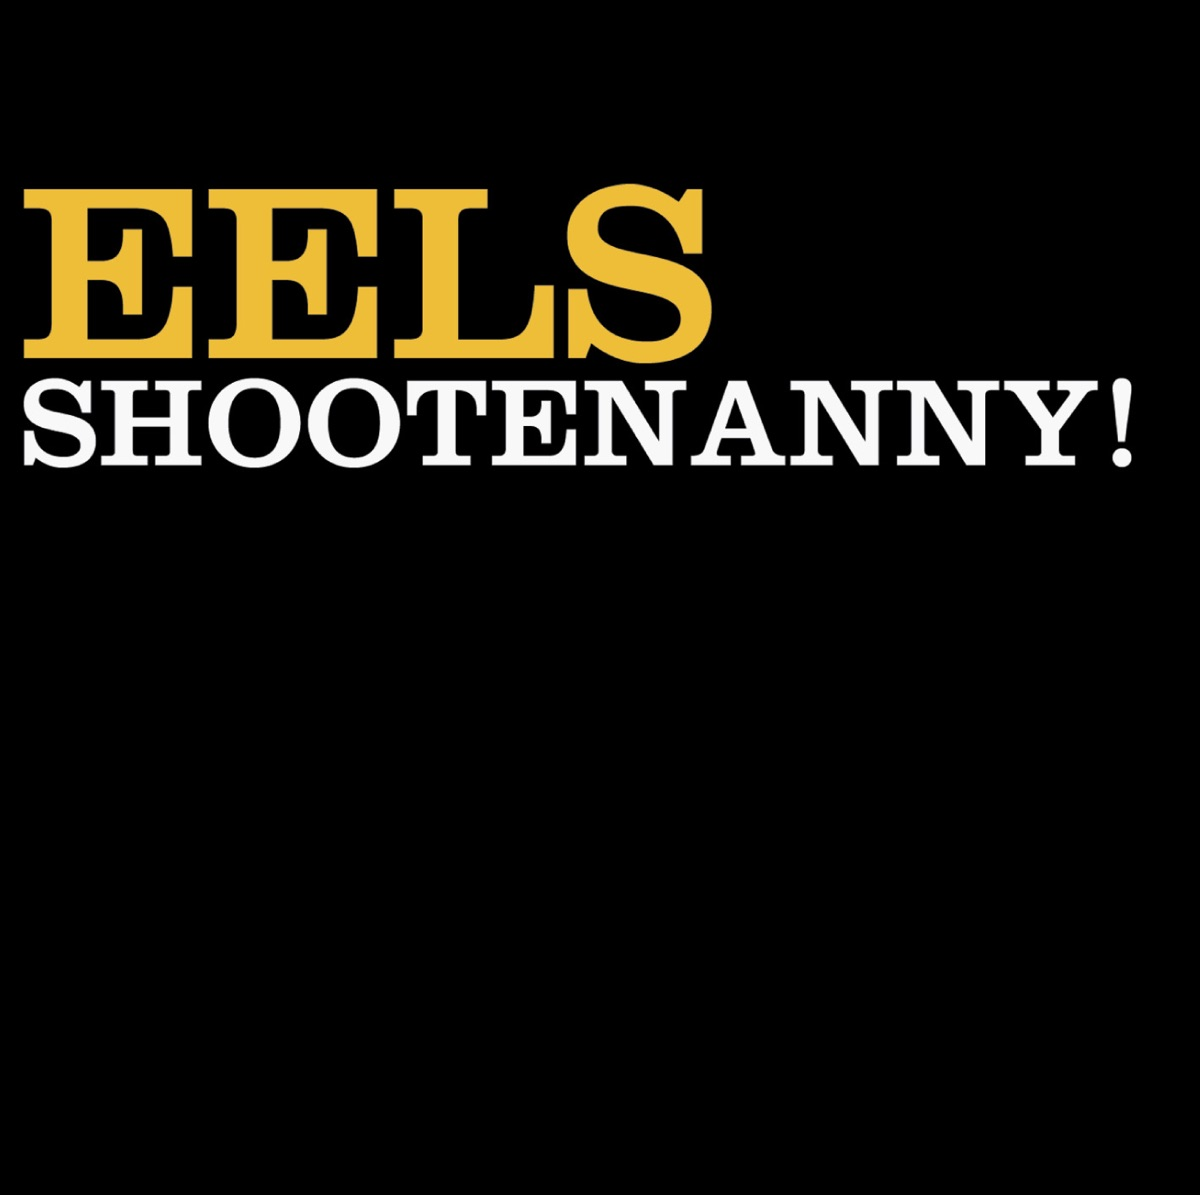 Eels Shootenanny By Eels Album Artwork Cover My Tunes